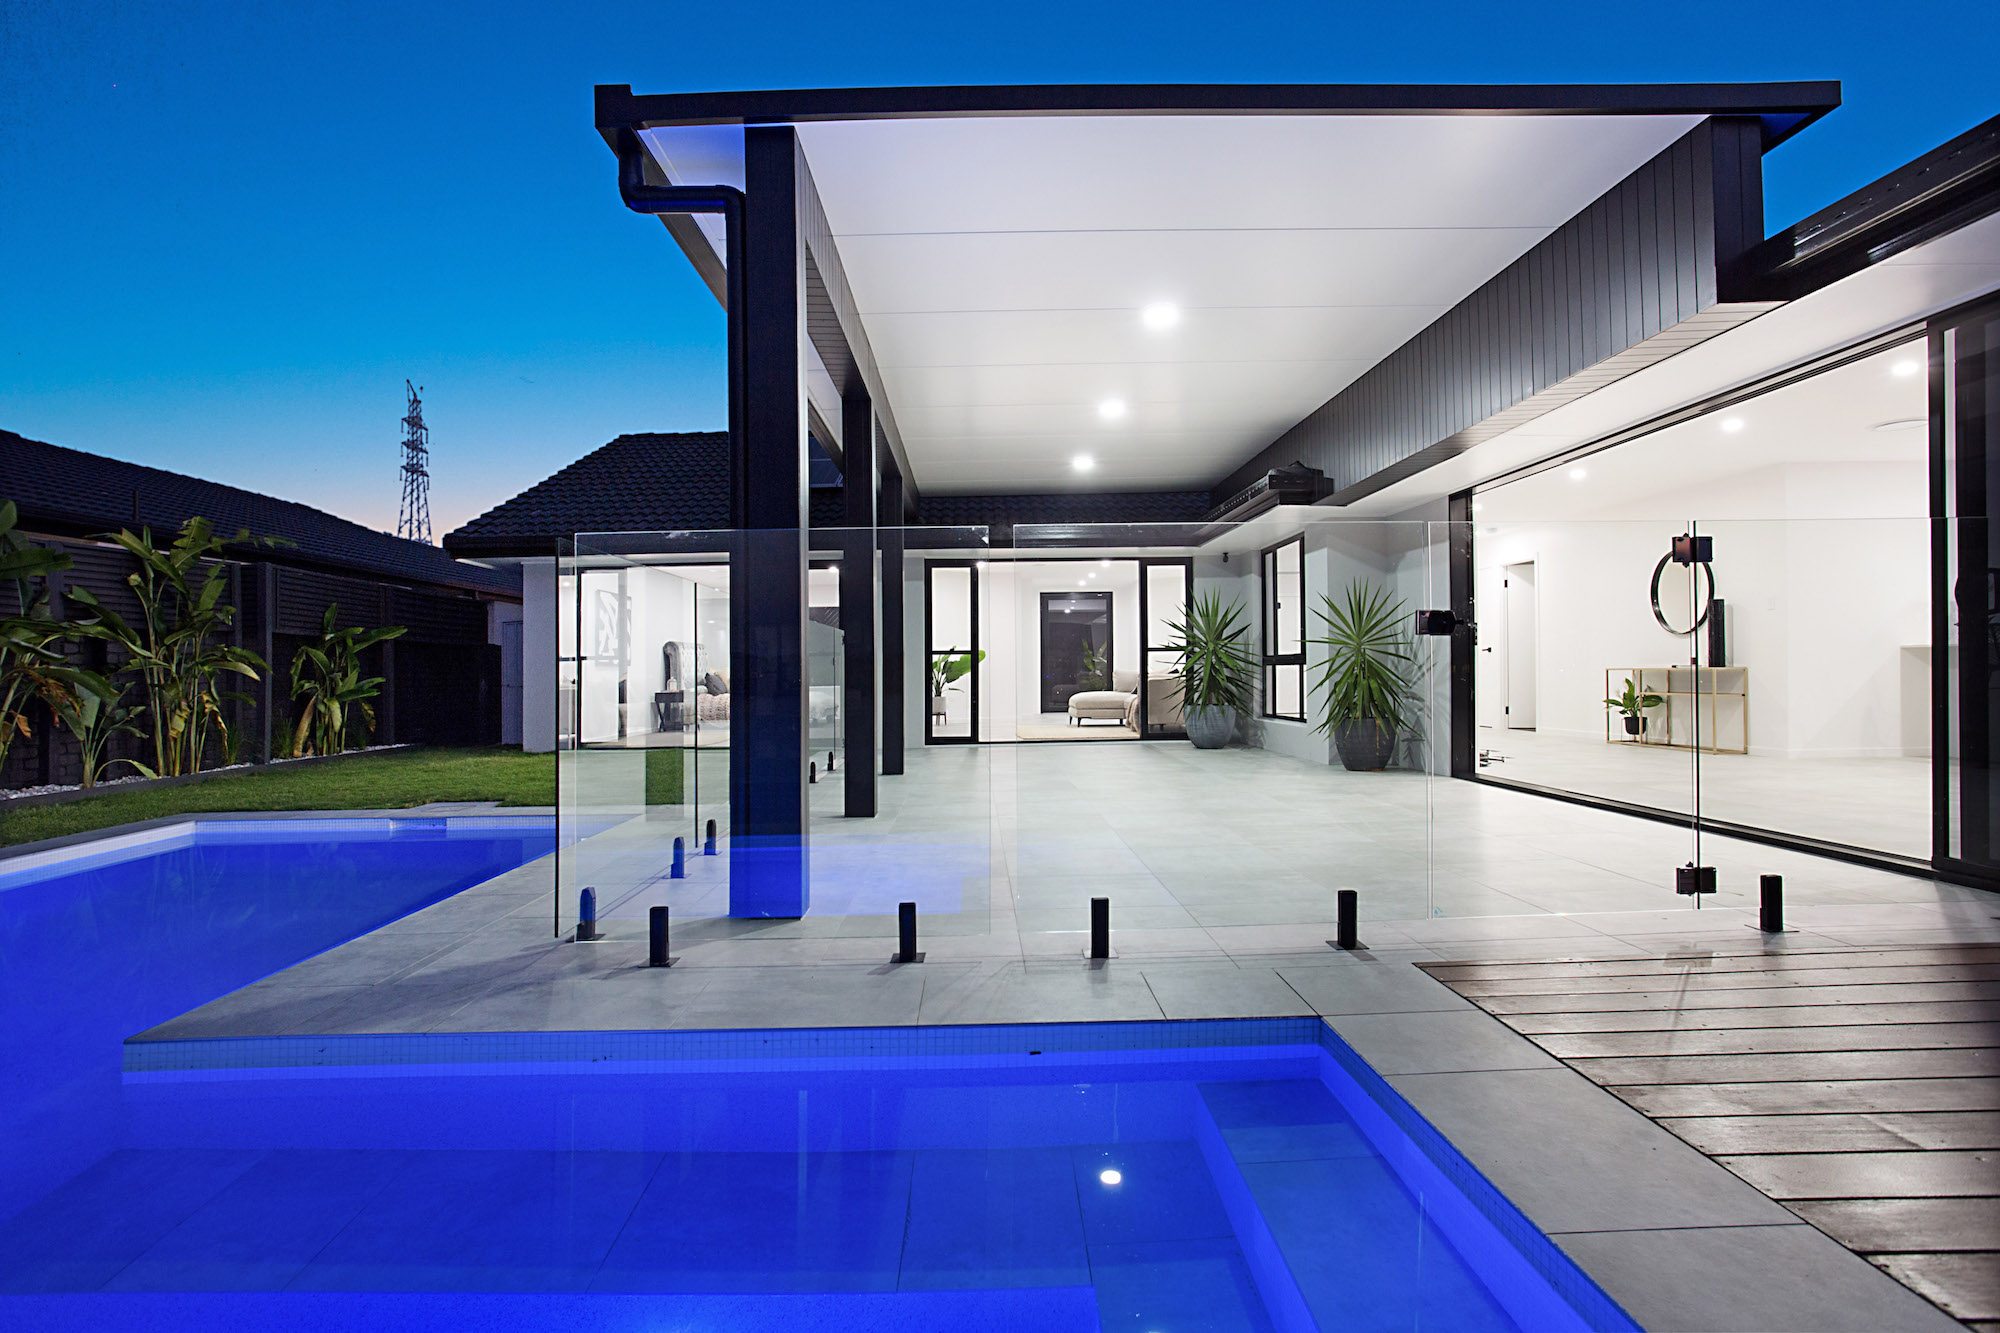 Outdoor entertaining space with a modern pool with white mosaic tiles and concrete flooring